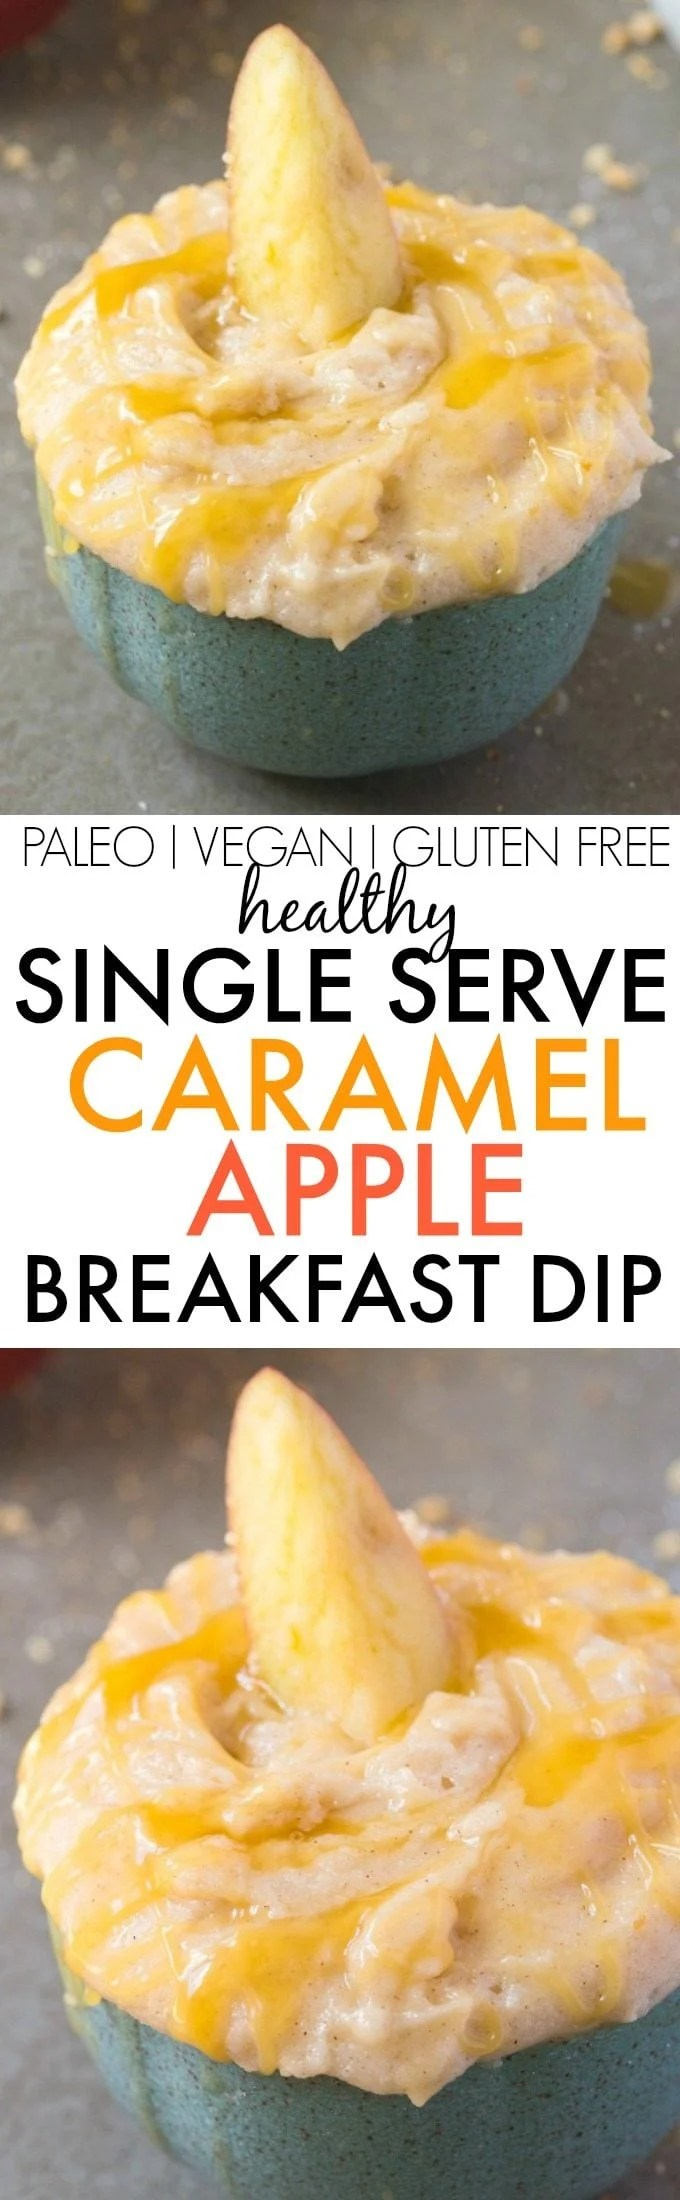 Healthy Single Serve Caramel Apple BREAKFAST Dip- Thick, creamy and secretly healthy, it's packed with protein and perfectly portioned- You just need a spoon! A quick and easy breakfast, snack or clean eating dessert flavored with caramel and apple pie spice! {vegan, gluten free, paleo, sugar free recipe}- thebigmansworld.com